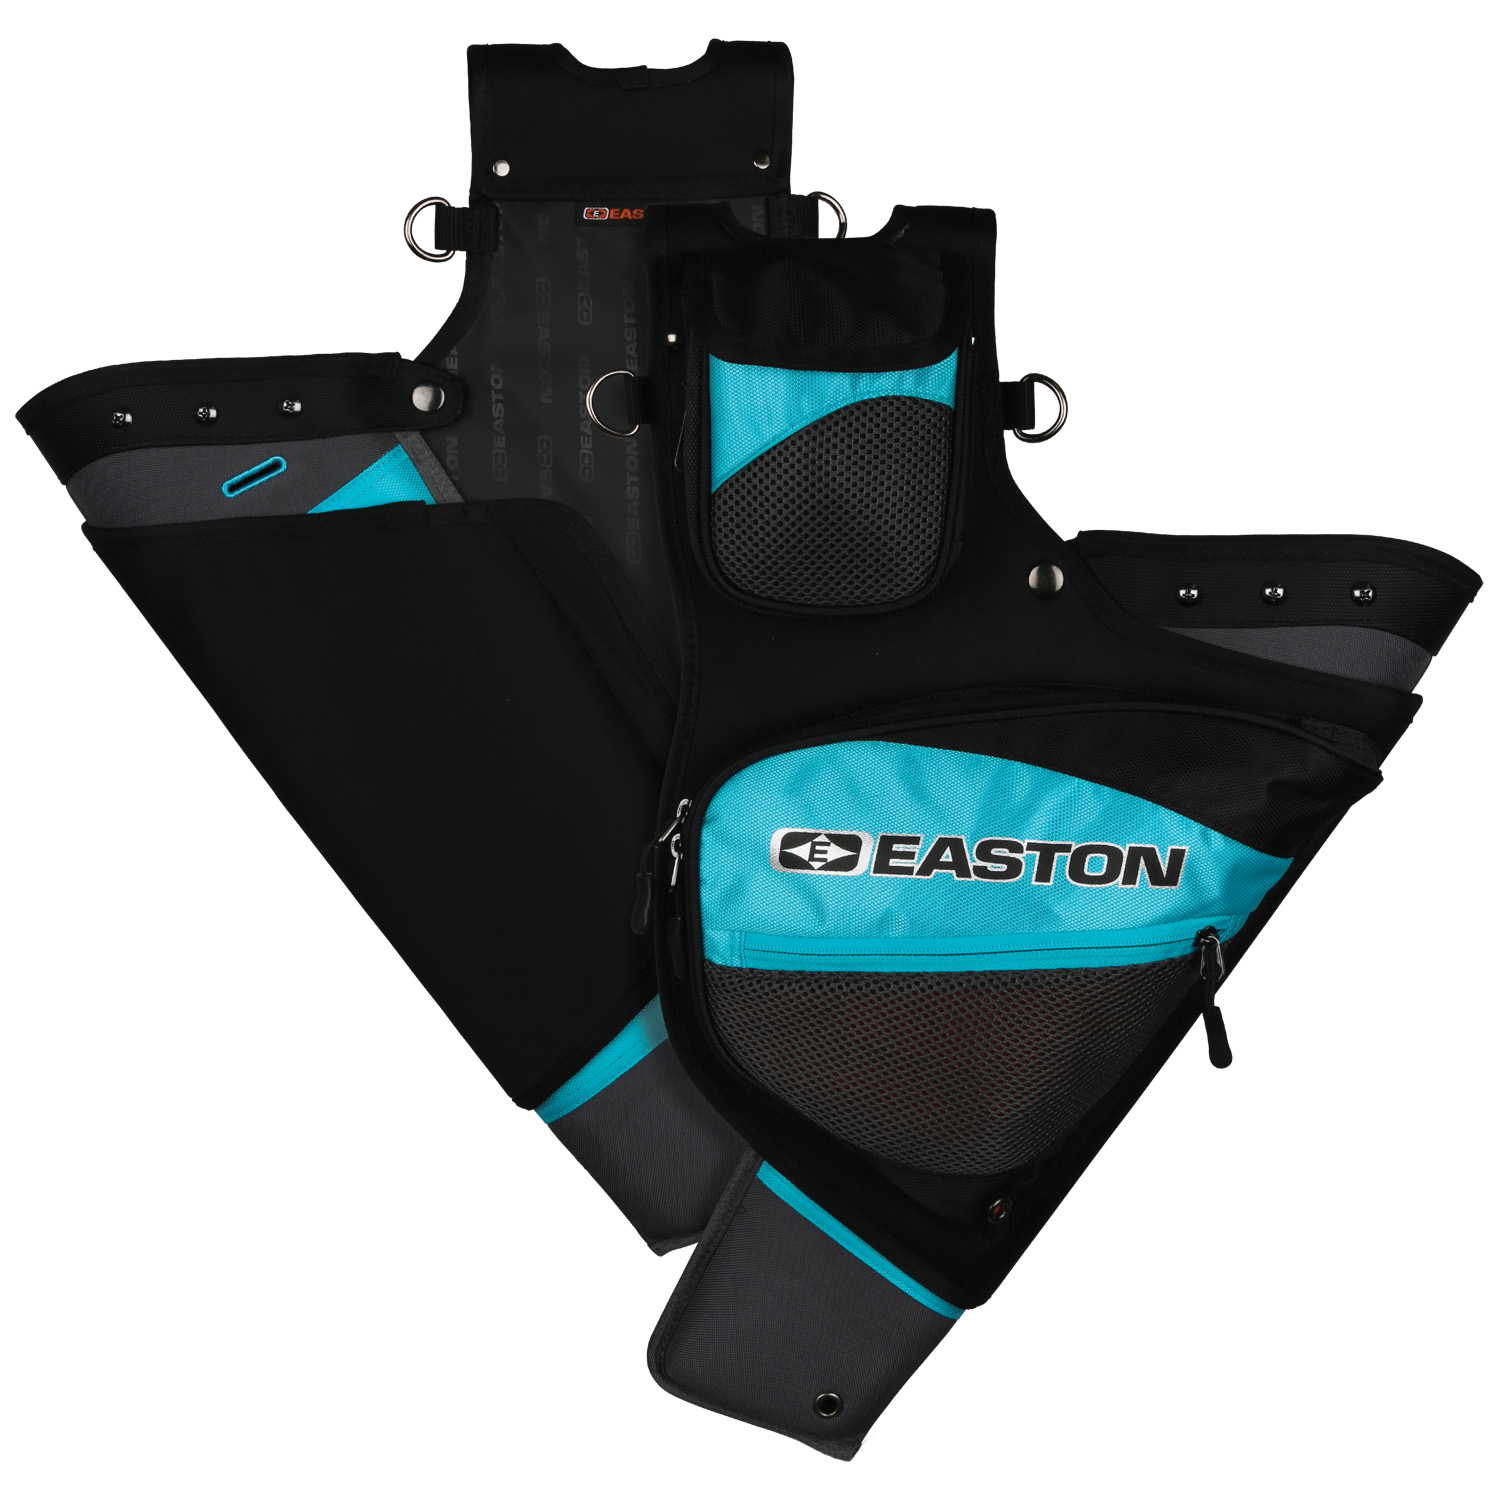 Easton Deluxe Hip Quiver, Teal, RH